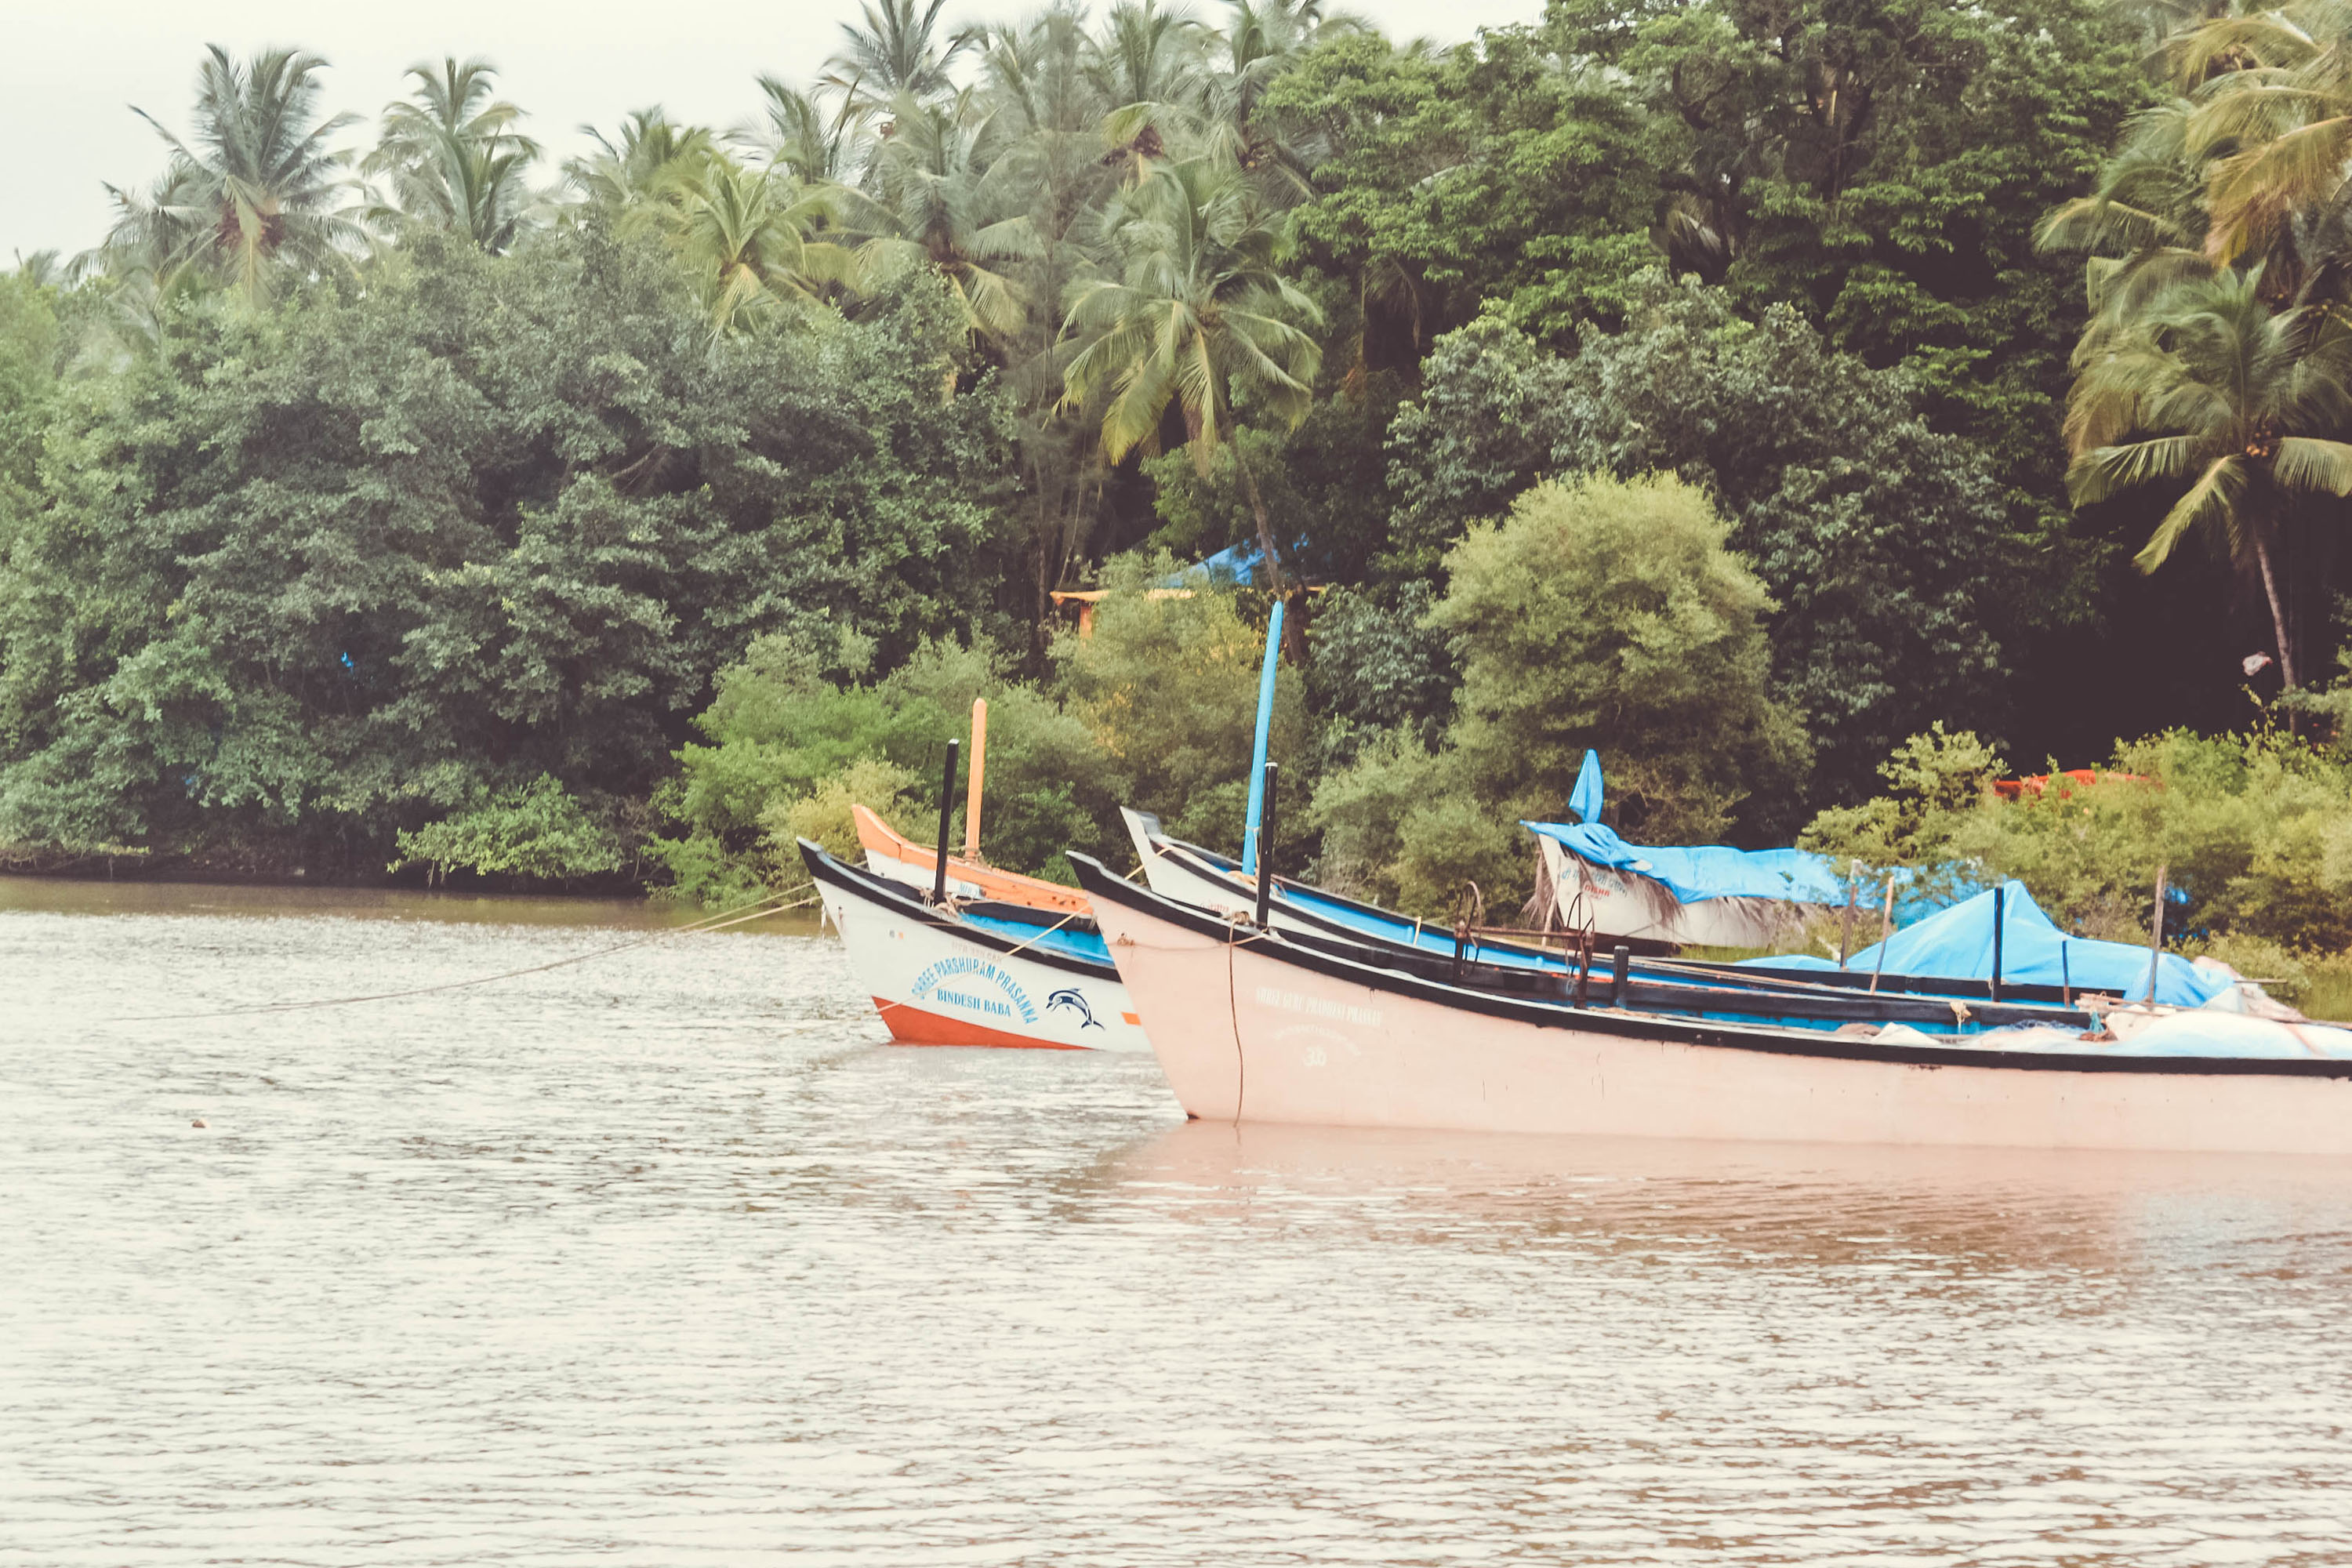 goa, boats, free indian travel and stock photos